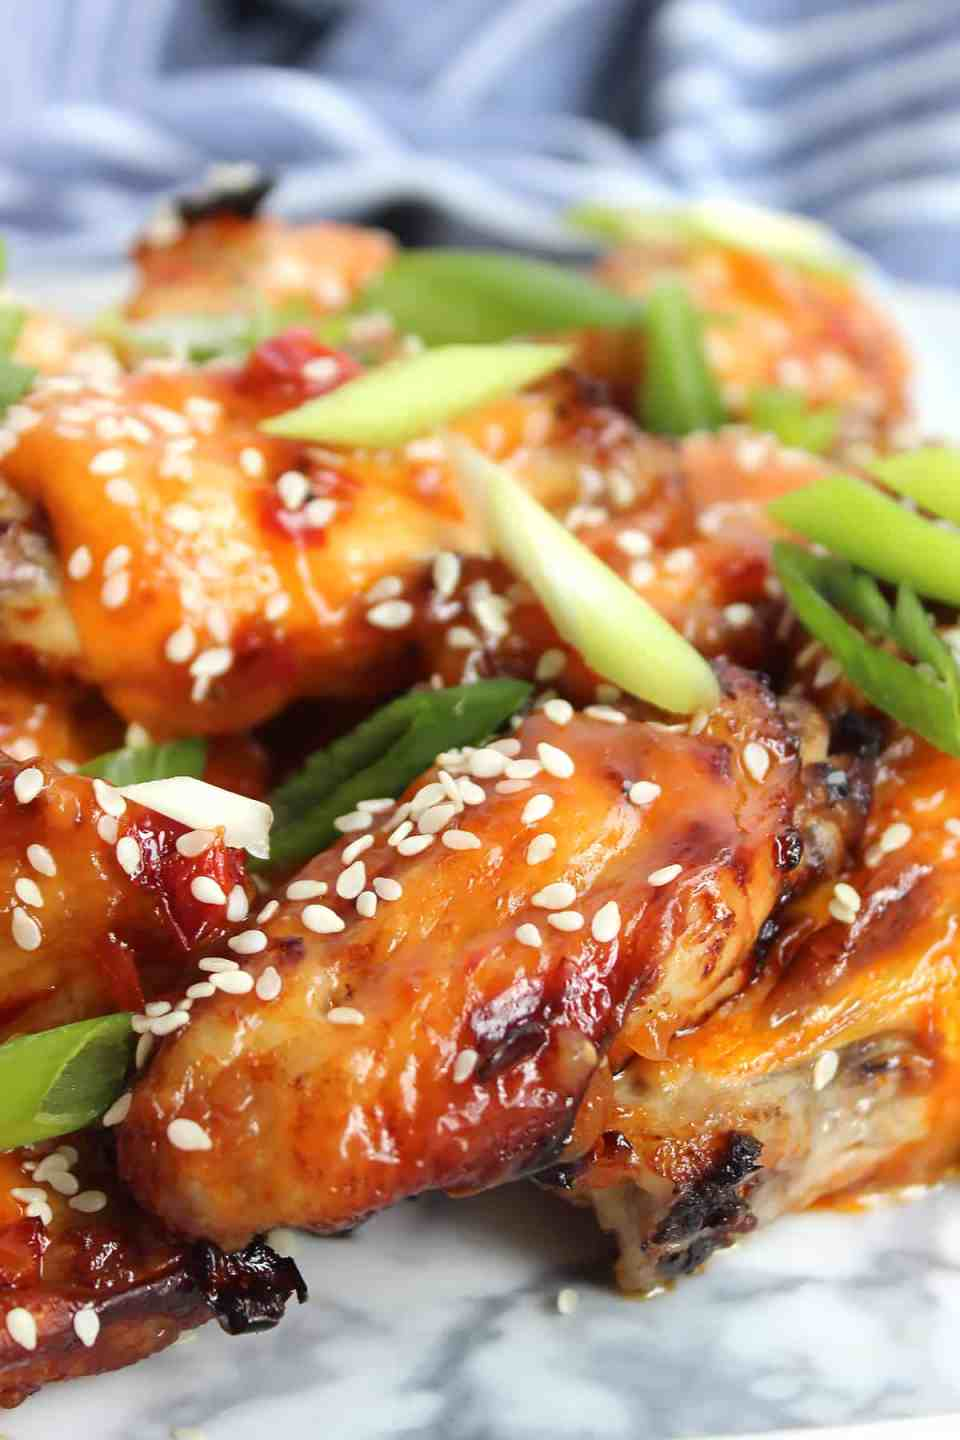 Chili and pineapple wings piled on top of each other